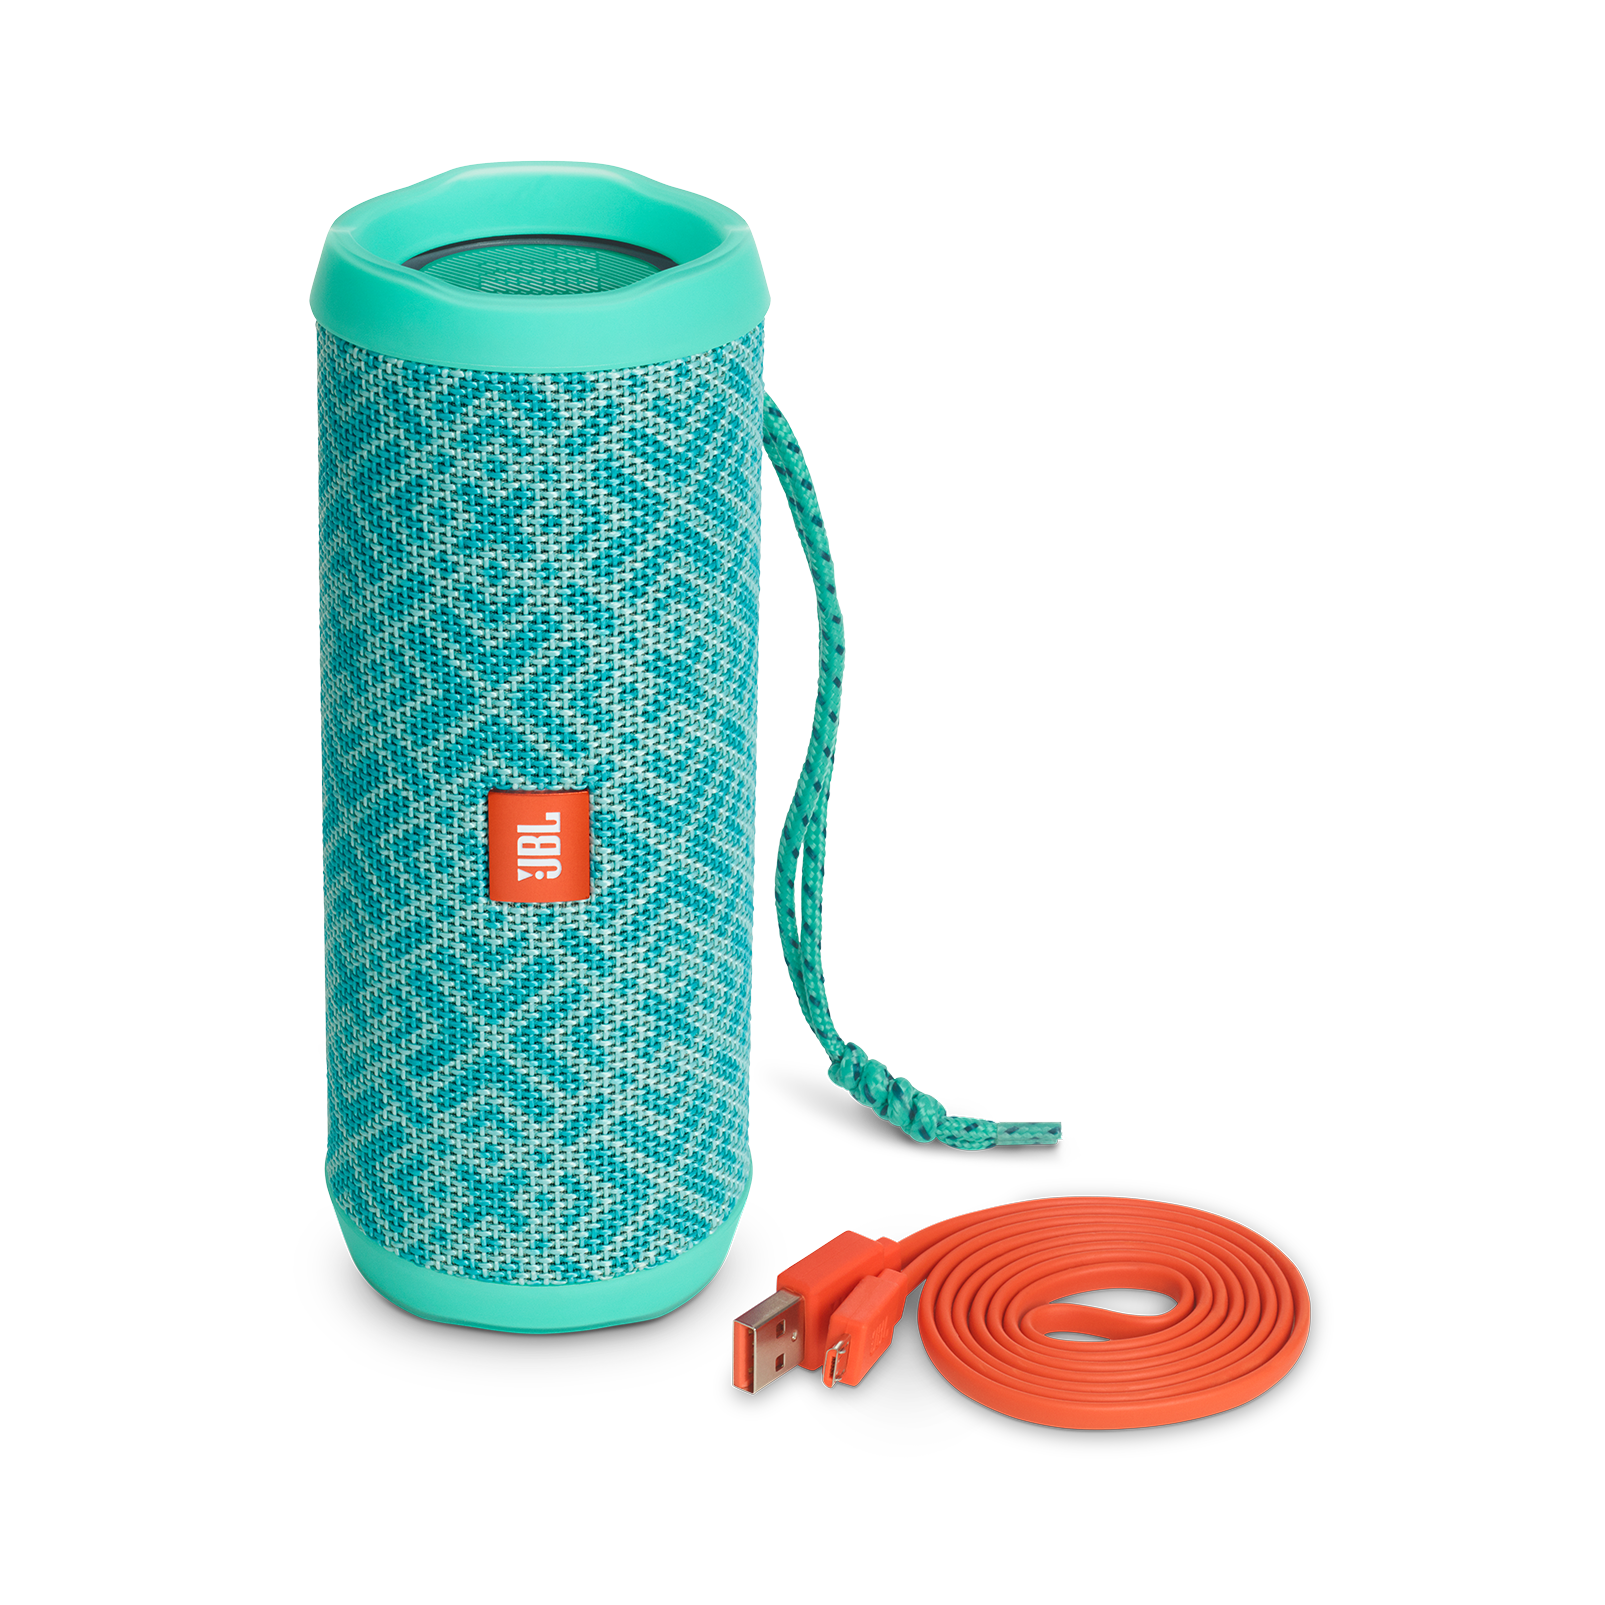 jbl flip 4 special edition waterproof portable bluetooth